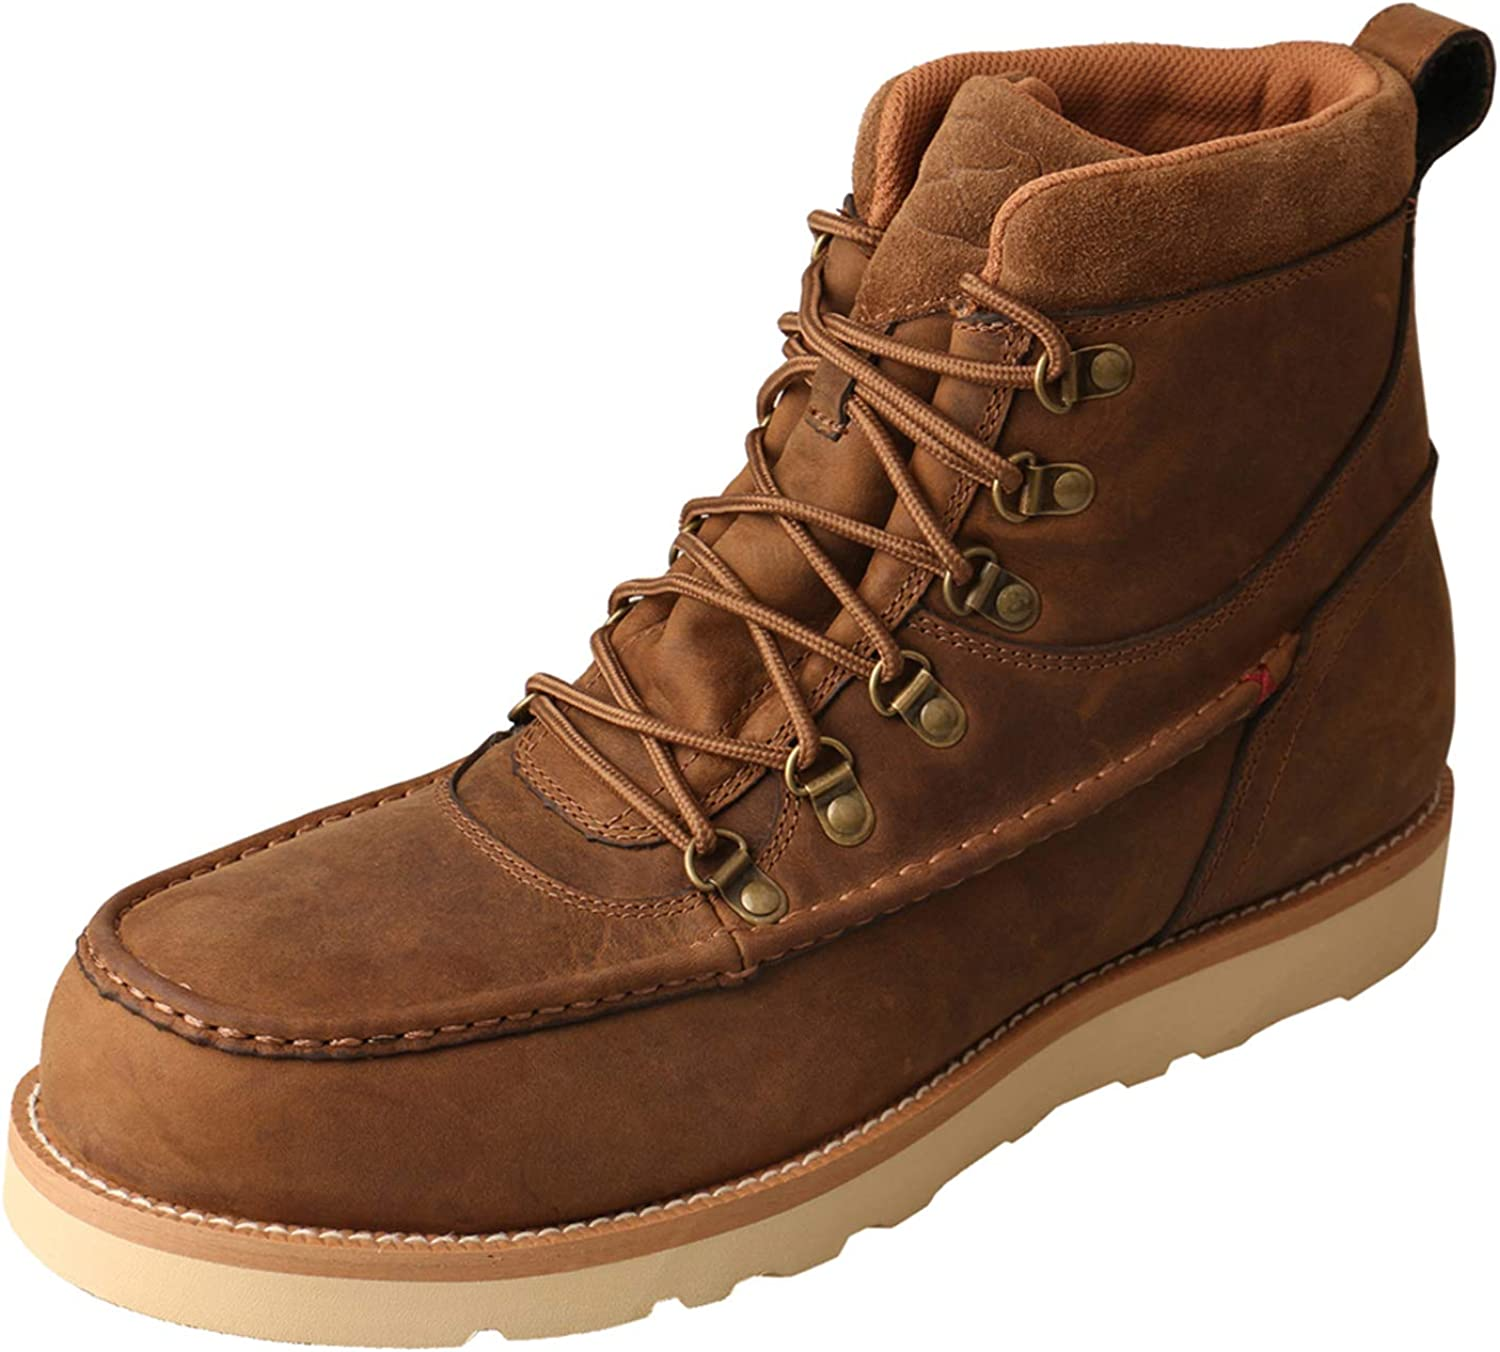 Reservation Twisted Max 49% OFF X Men's Alloy Wedge Boots Toe Sole